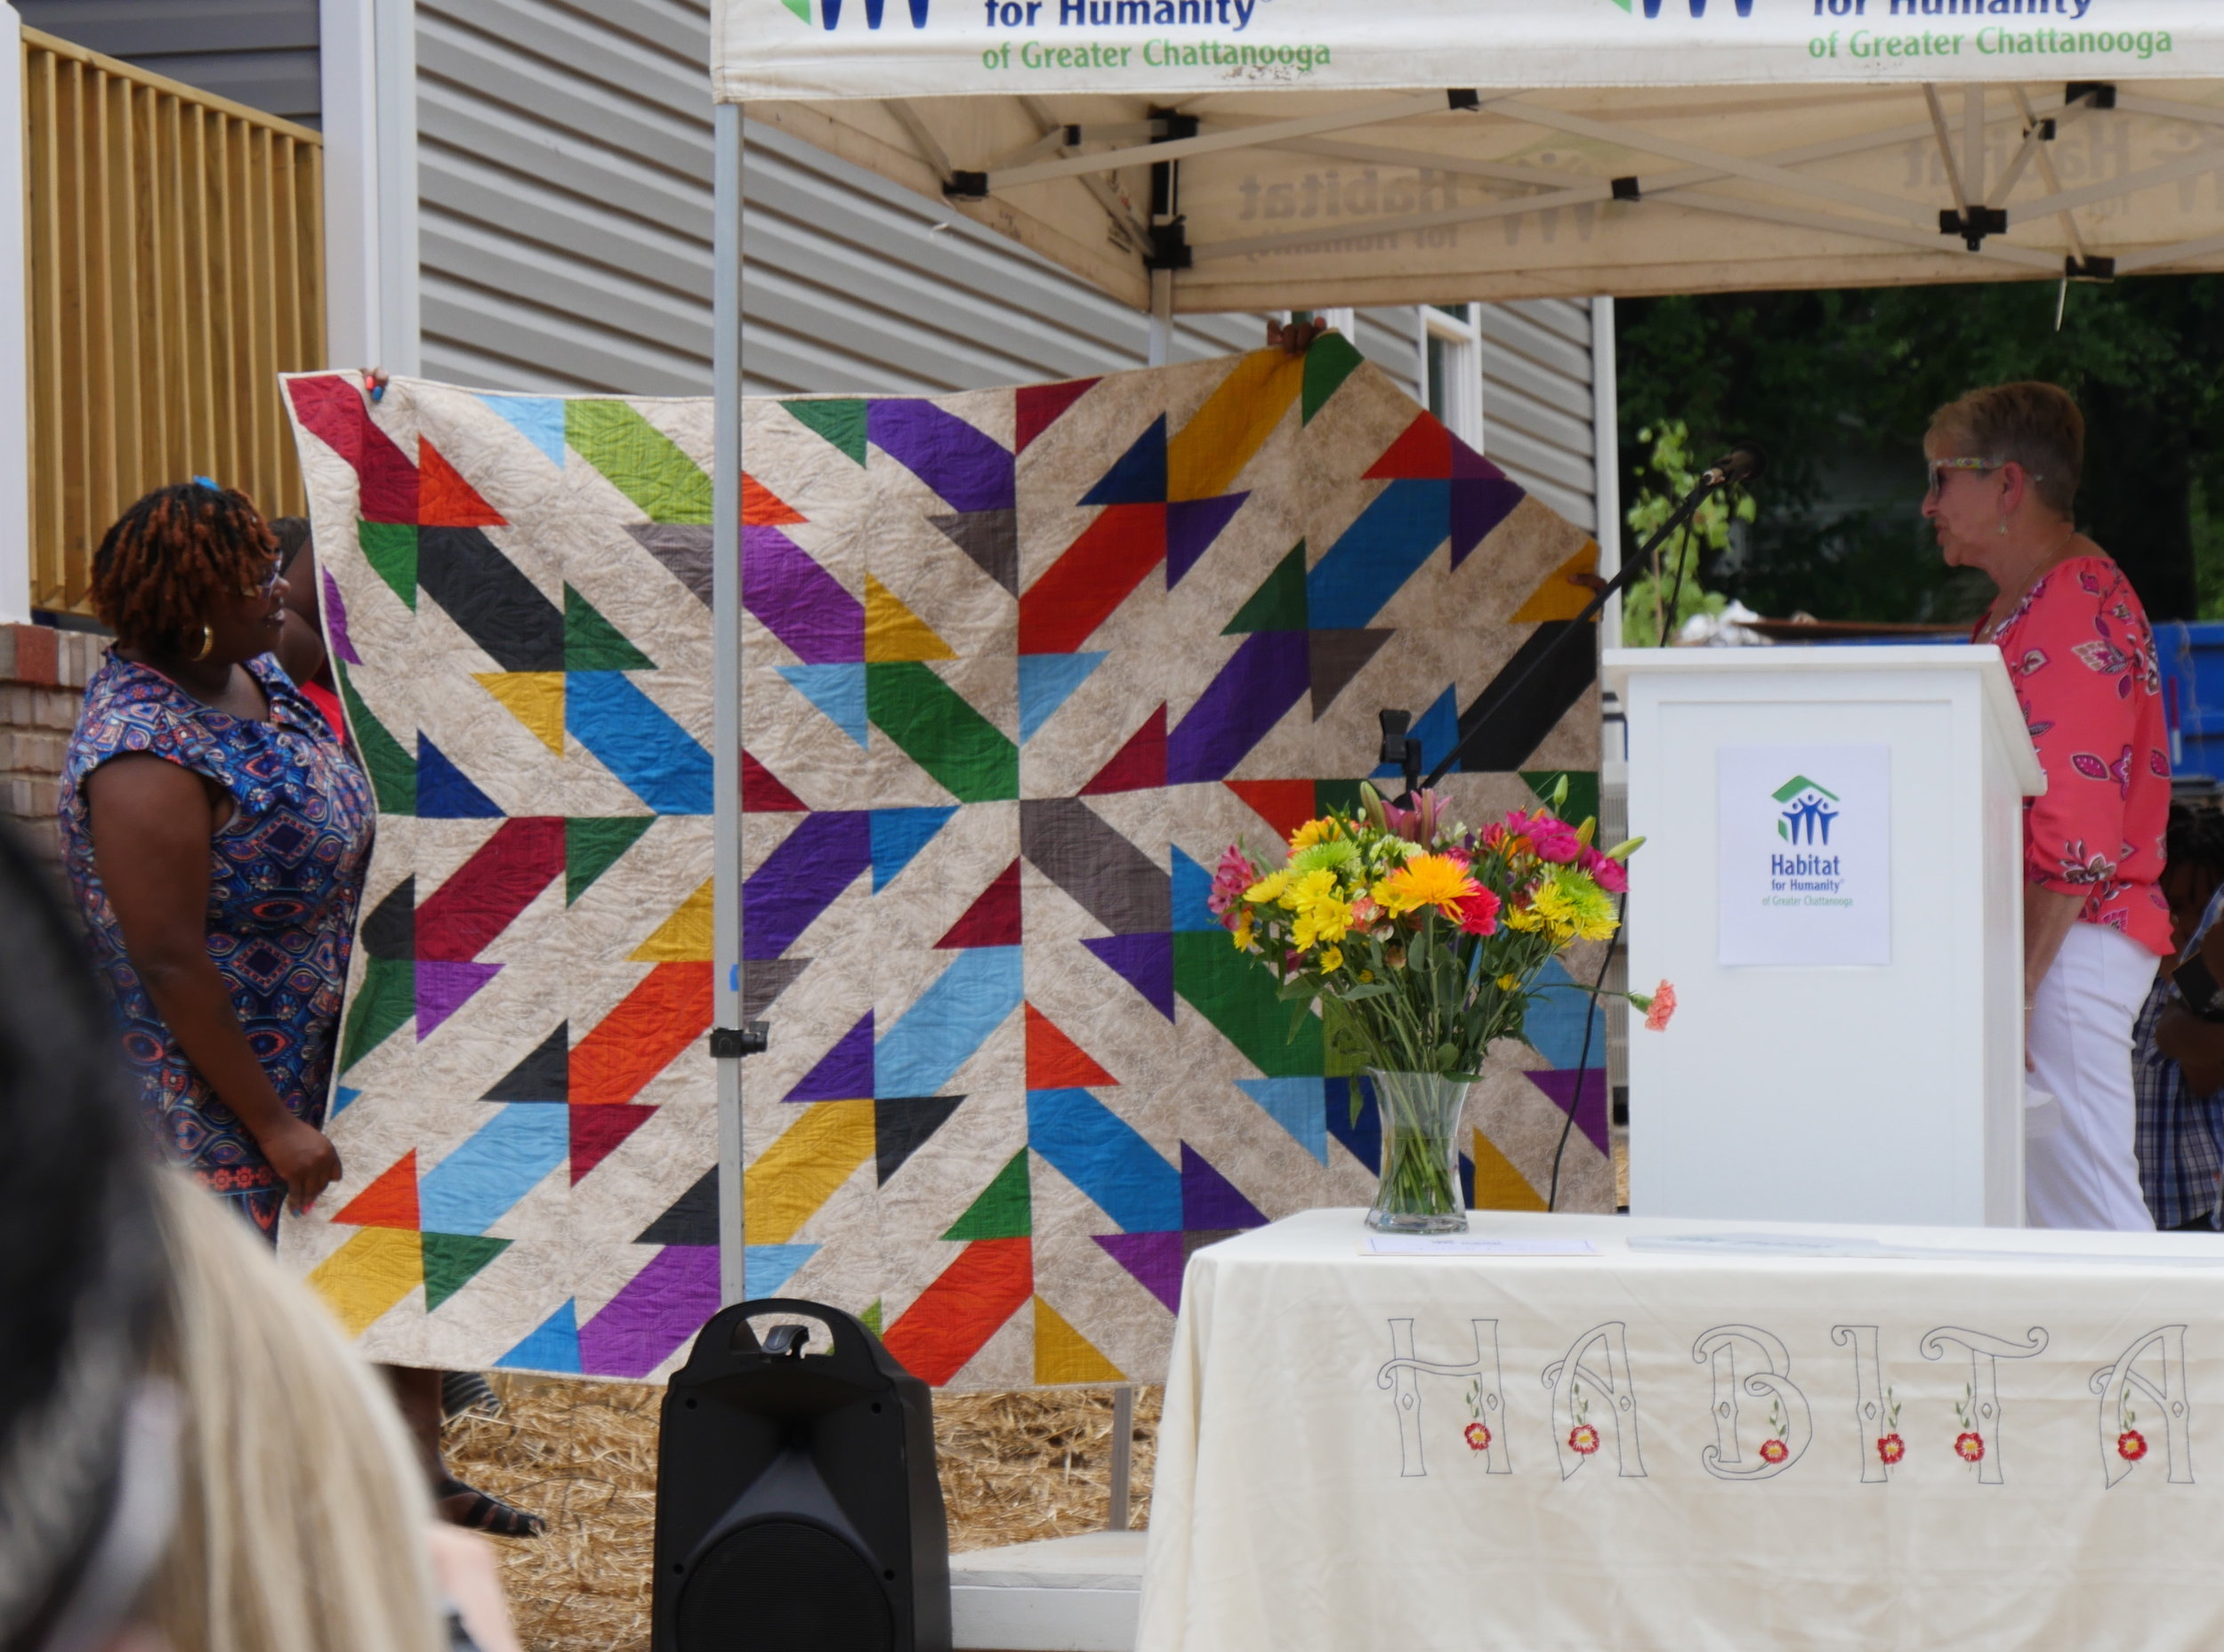 Fanetta (left) loves her colorful quilt. Photo courtesy of Habitat for Humanity of Greater Chattanooga.